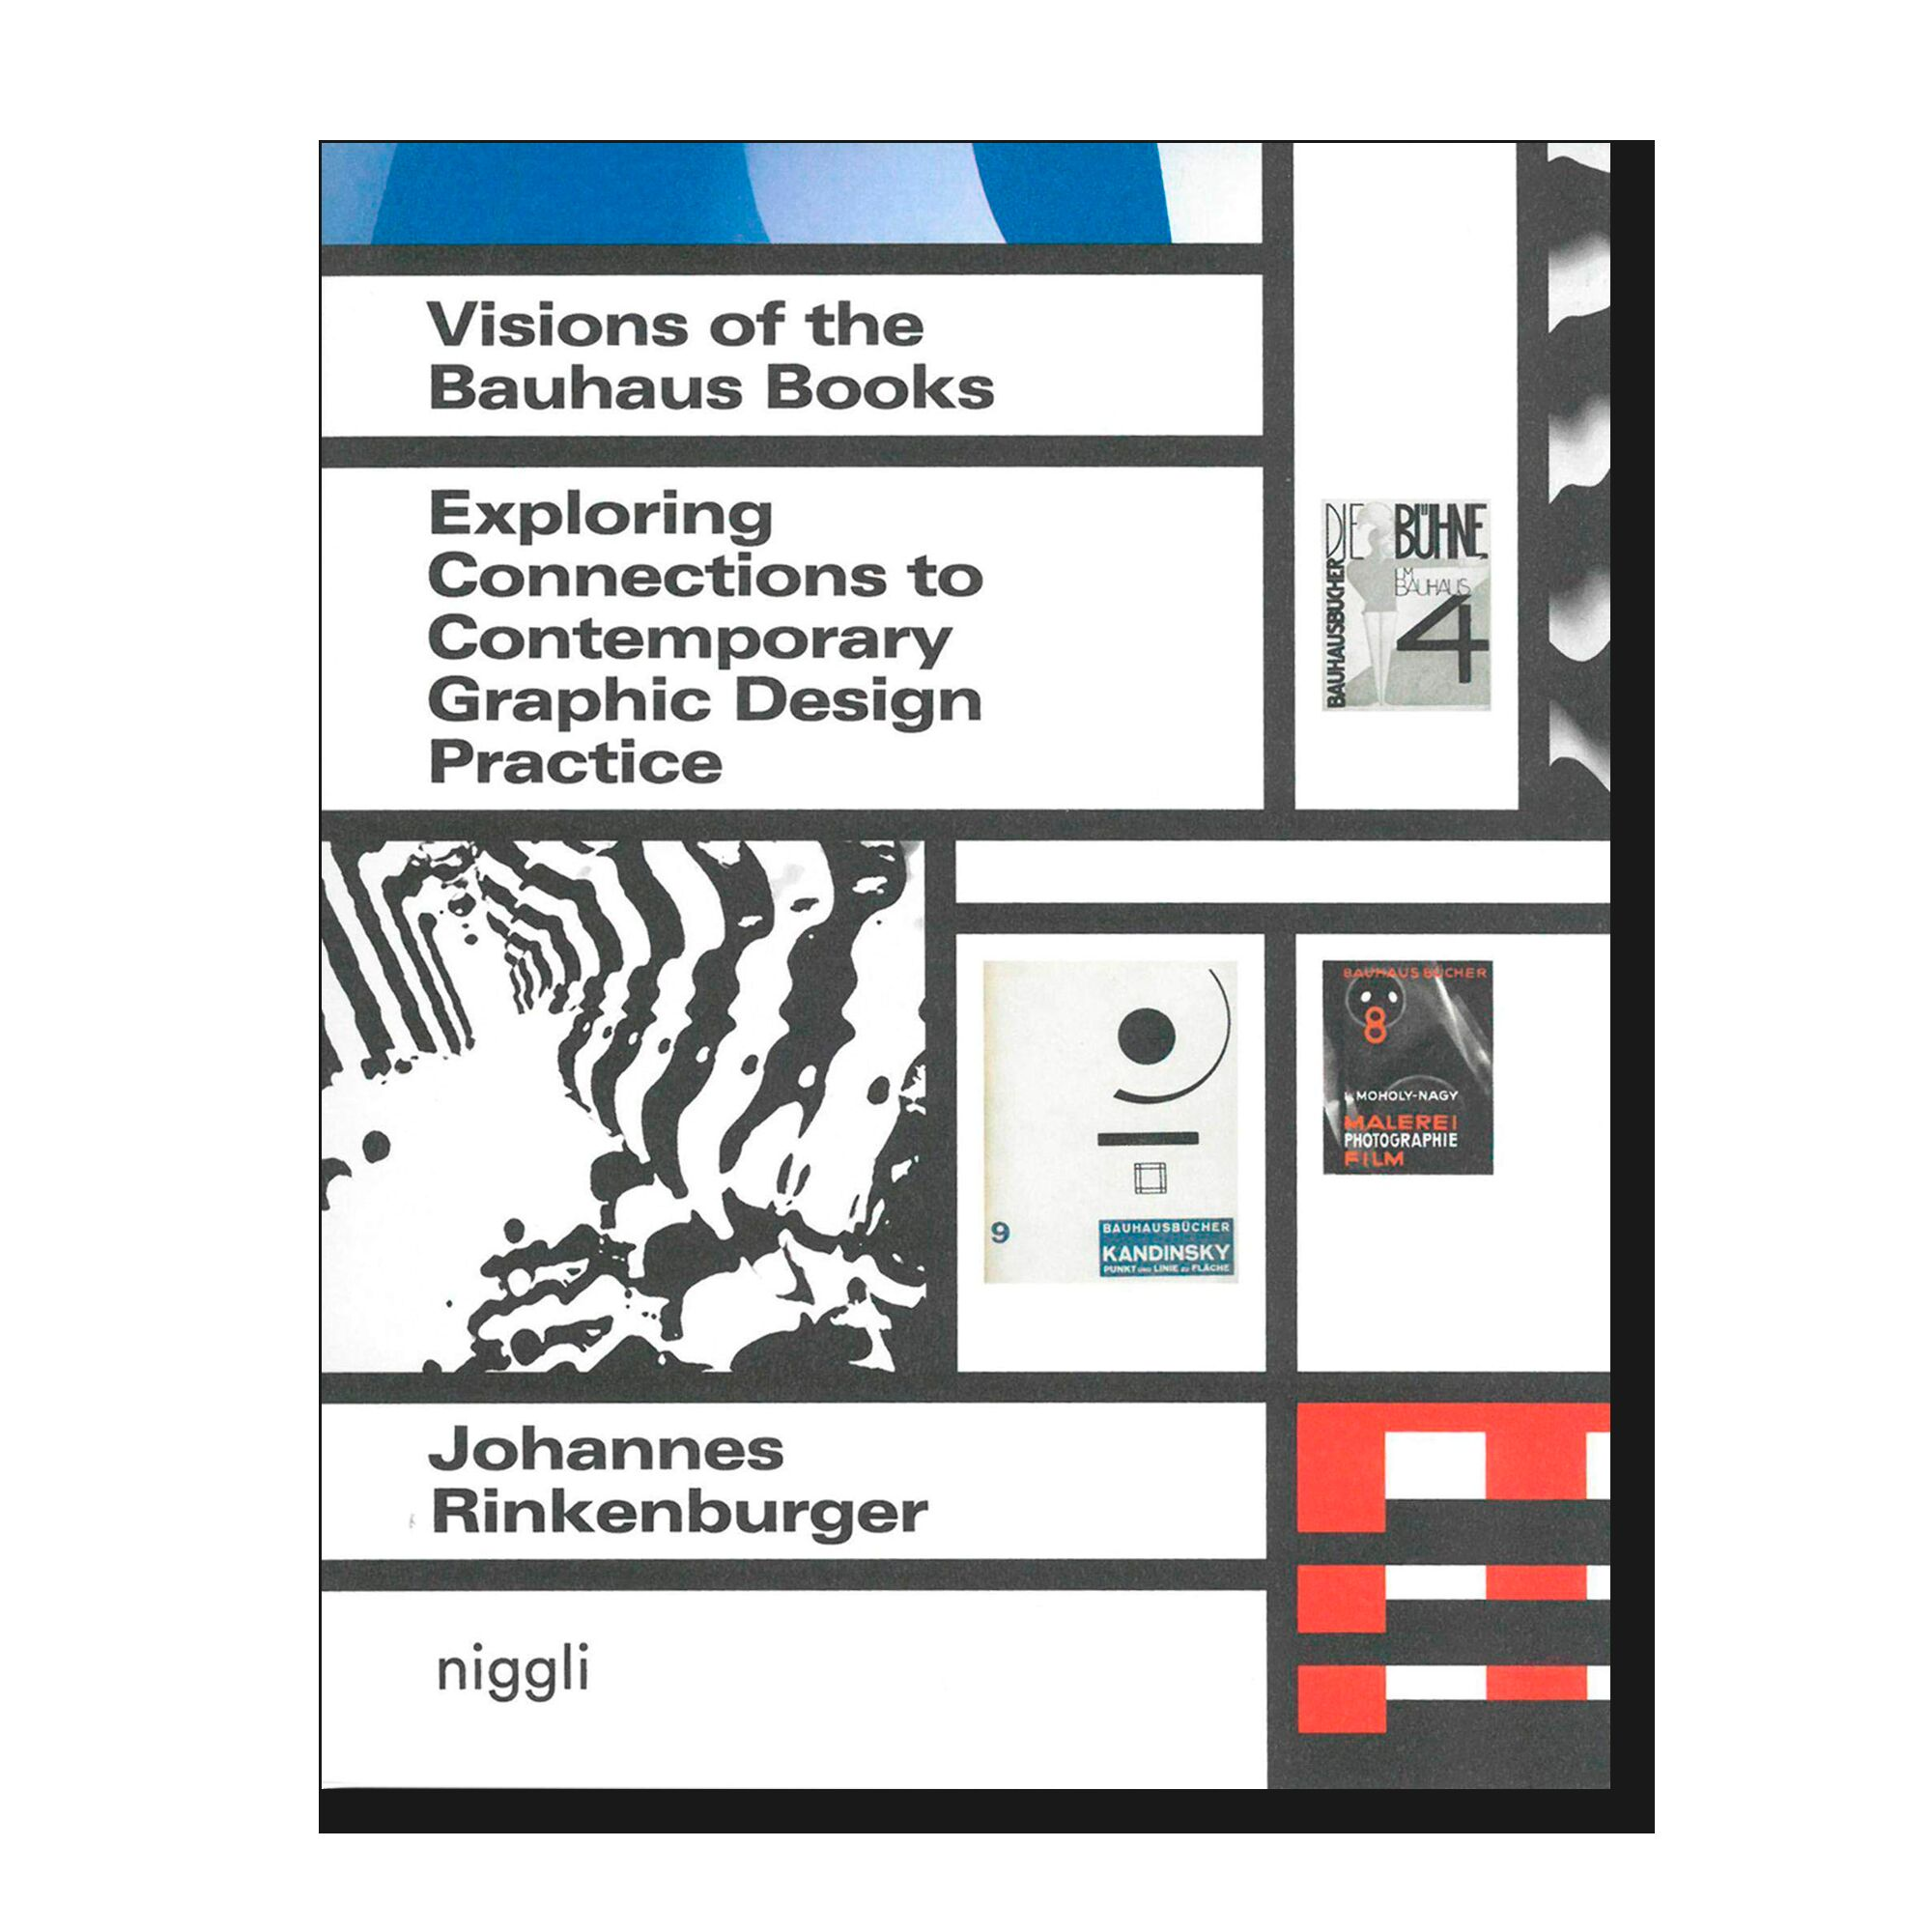 Visions of the Bauhaus Books